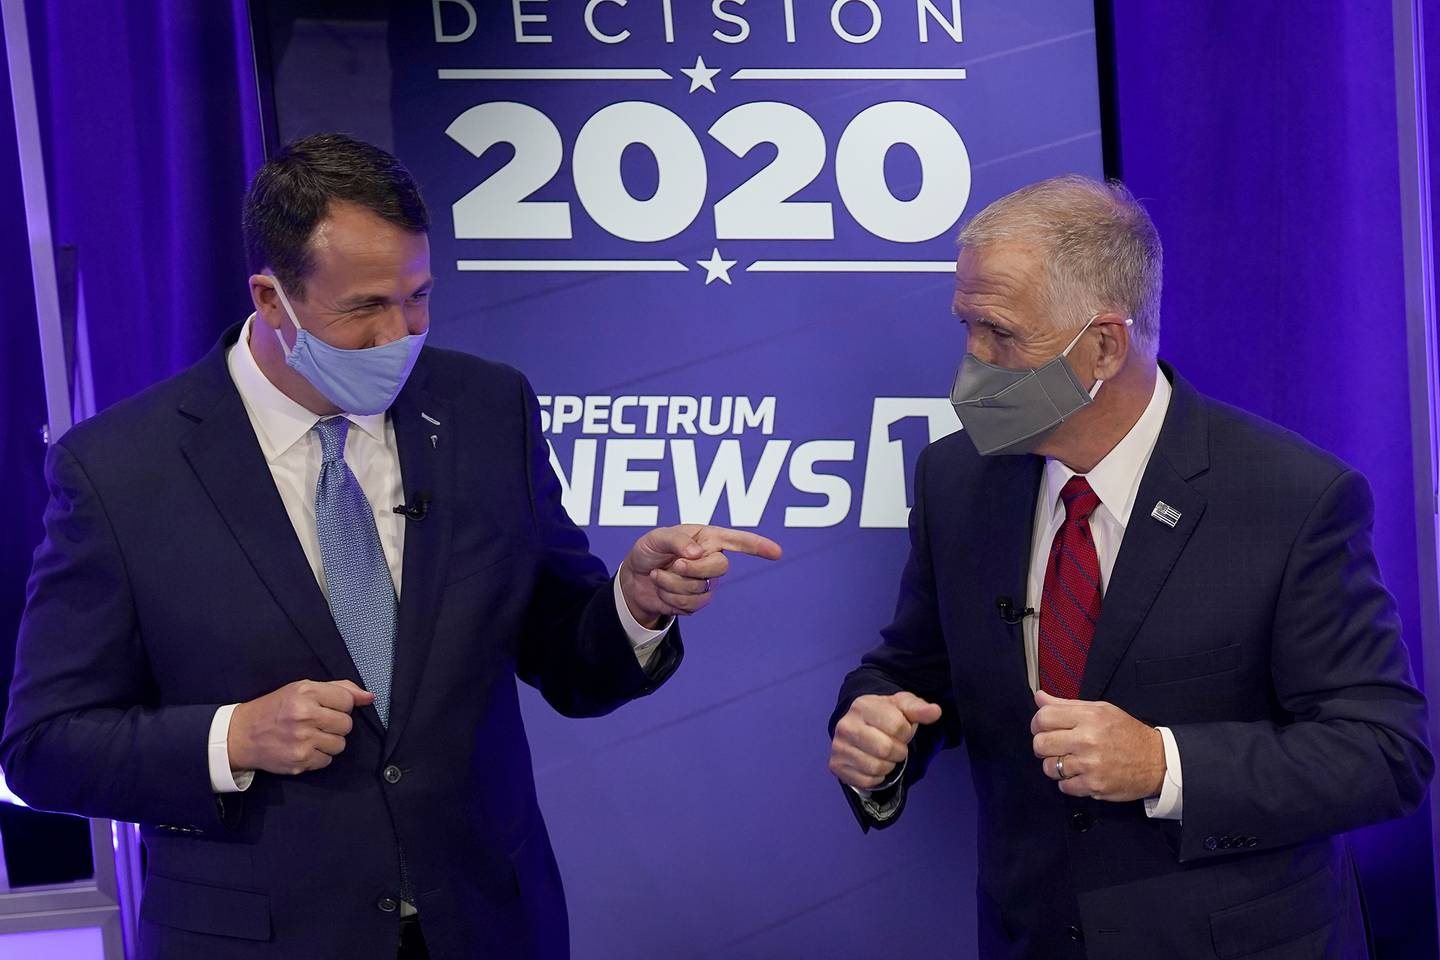 Democratic challenger Cal Cunningham, left, and U.S. Sen. Thom Tillis, R-N.C. greet each other after a televised debate Oct. 1, 2020, in Raleigh, N.C.